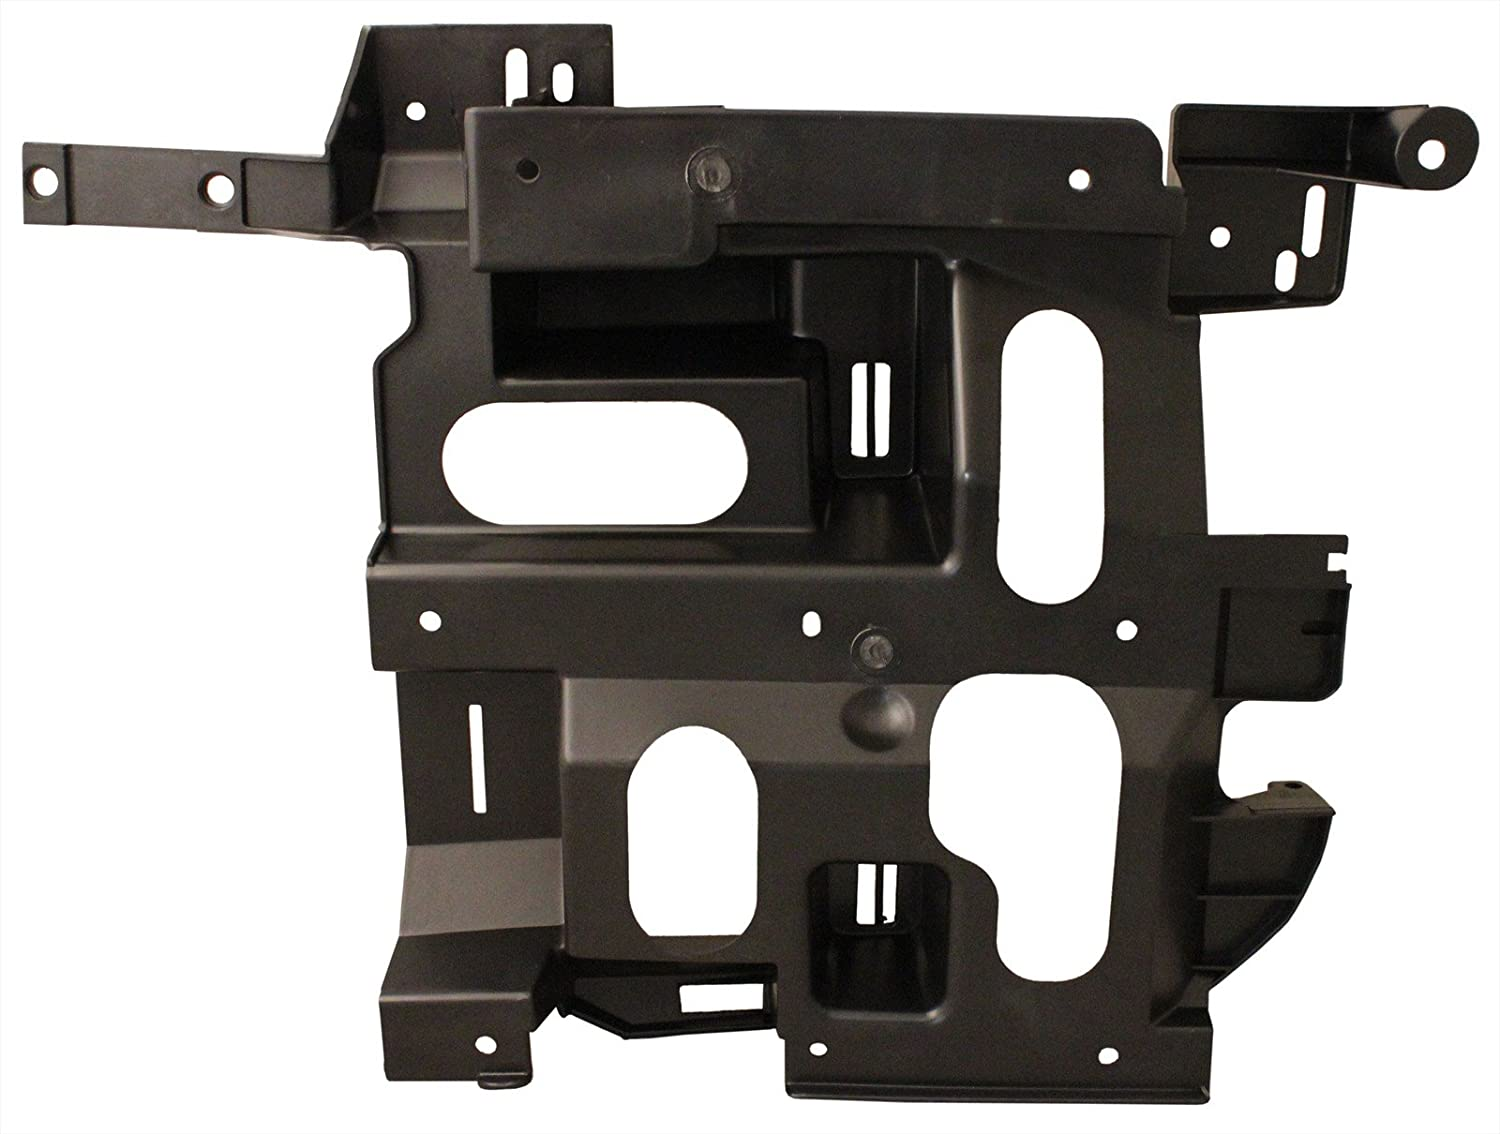 Replacement GM1221131 Passenger Side Headlight Mount Support Panel for 03-07 Chevy Silverado by Aftermarket Replacement After Market 4333010843